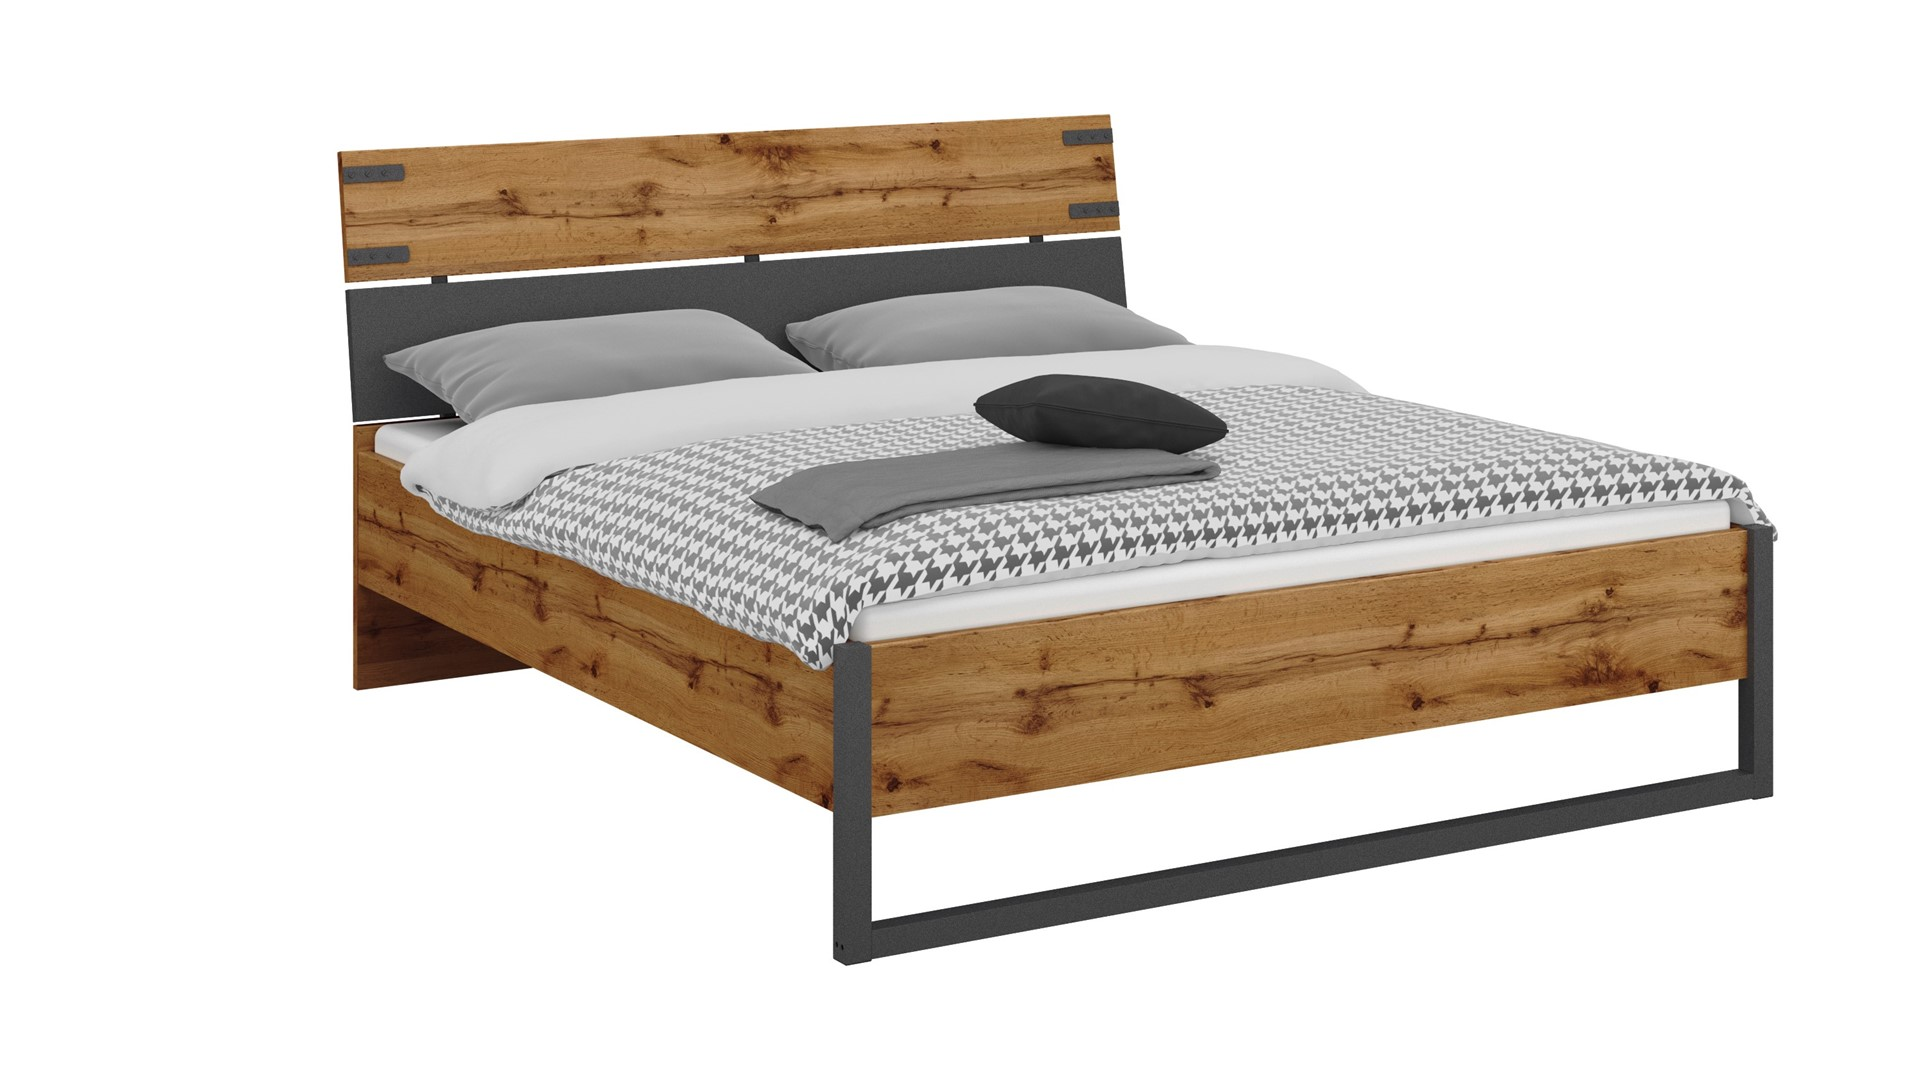 Bed Detroit: nú met €200 introductiekorting én 15% extra Black Friday korting